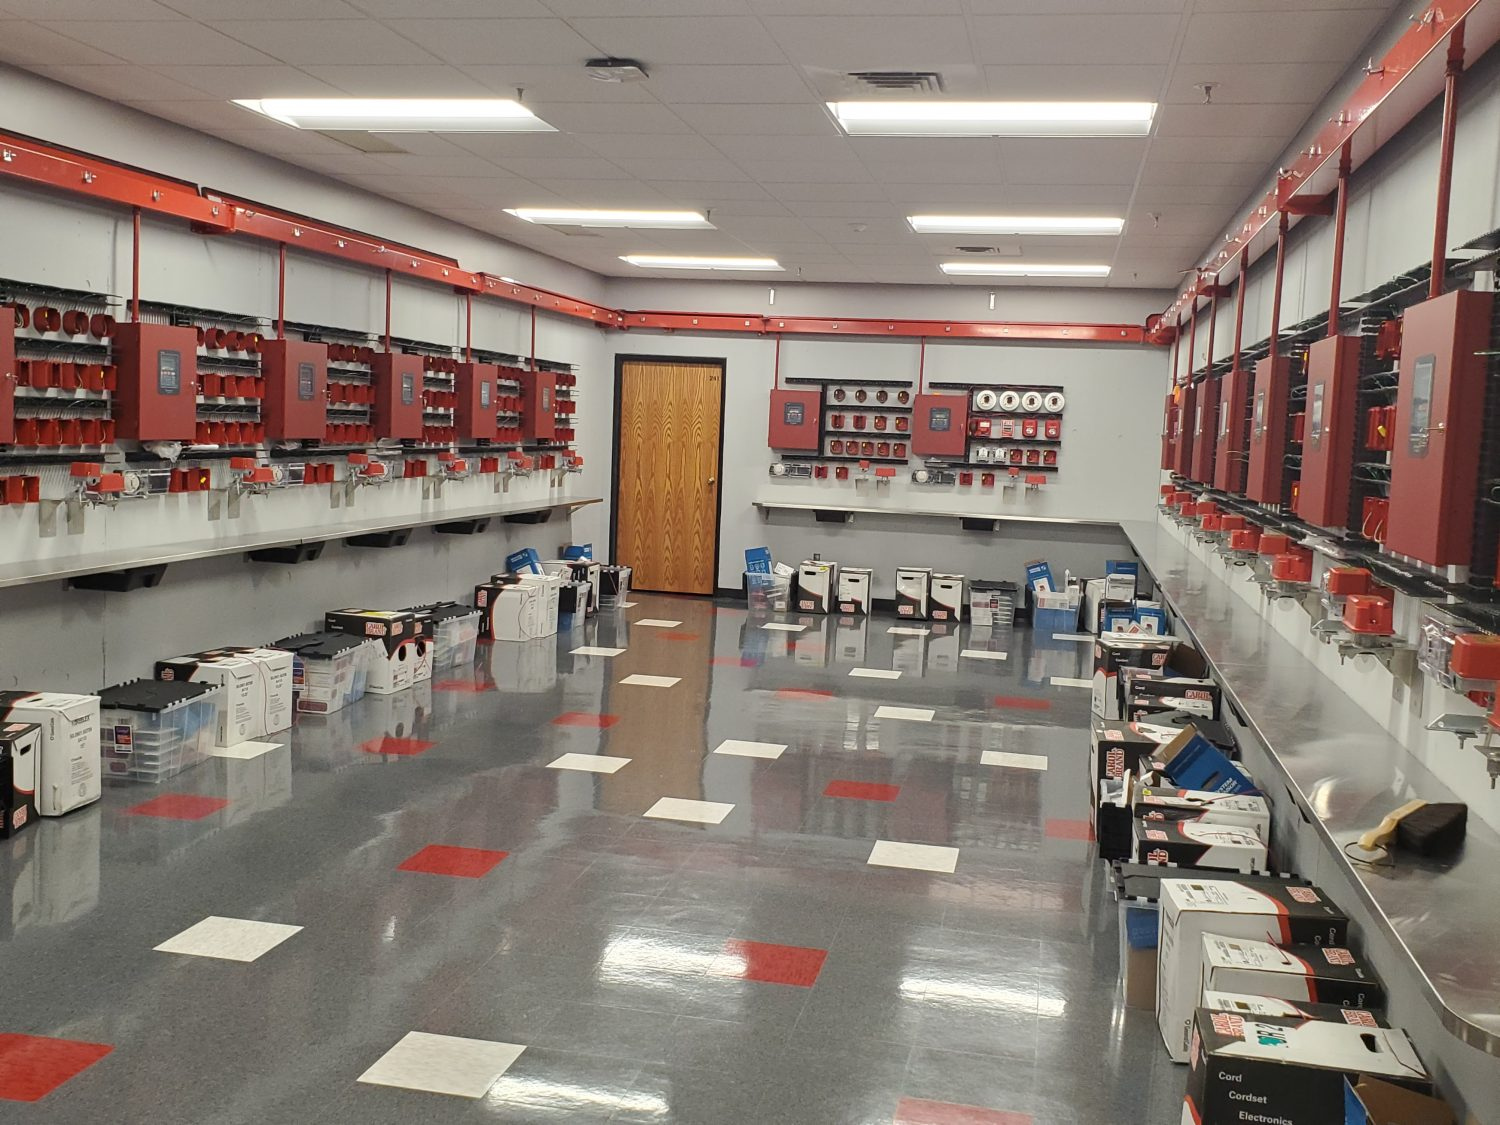 The Electrical Trades Center Fire Alarm Lab